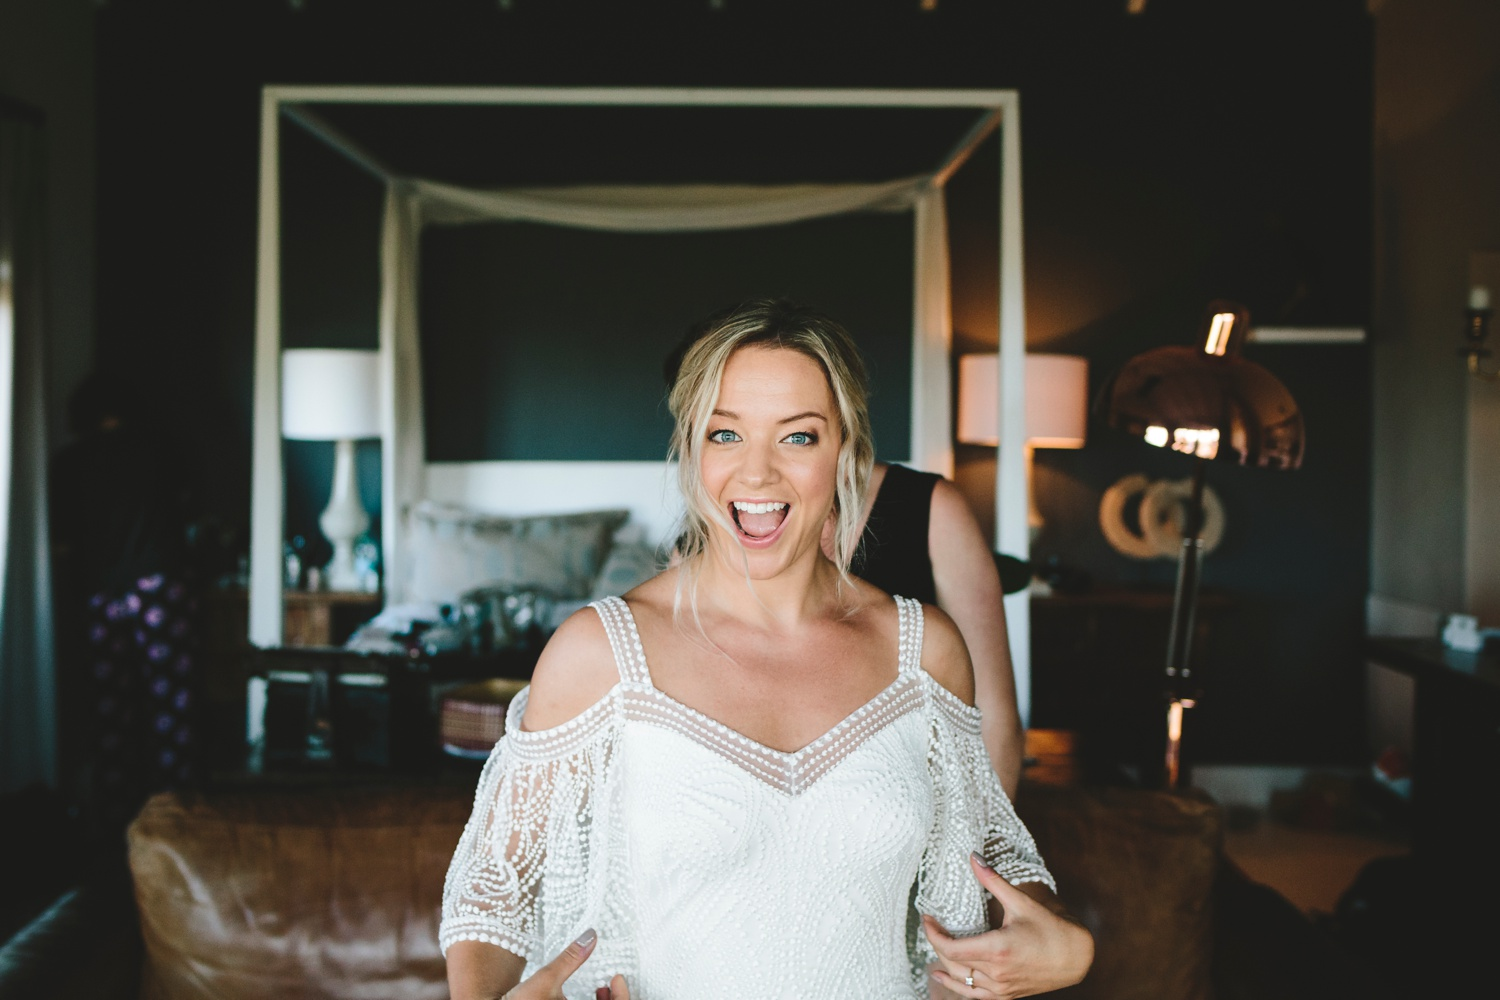 charlie_ray_photography_runaway_romance_elopement_emily_moon_plett_simple_boho_wedding_south_africa_bohemium_0032.jpg